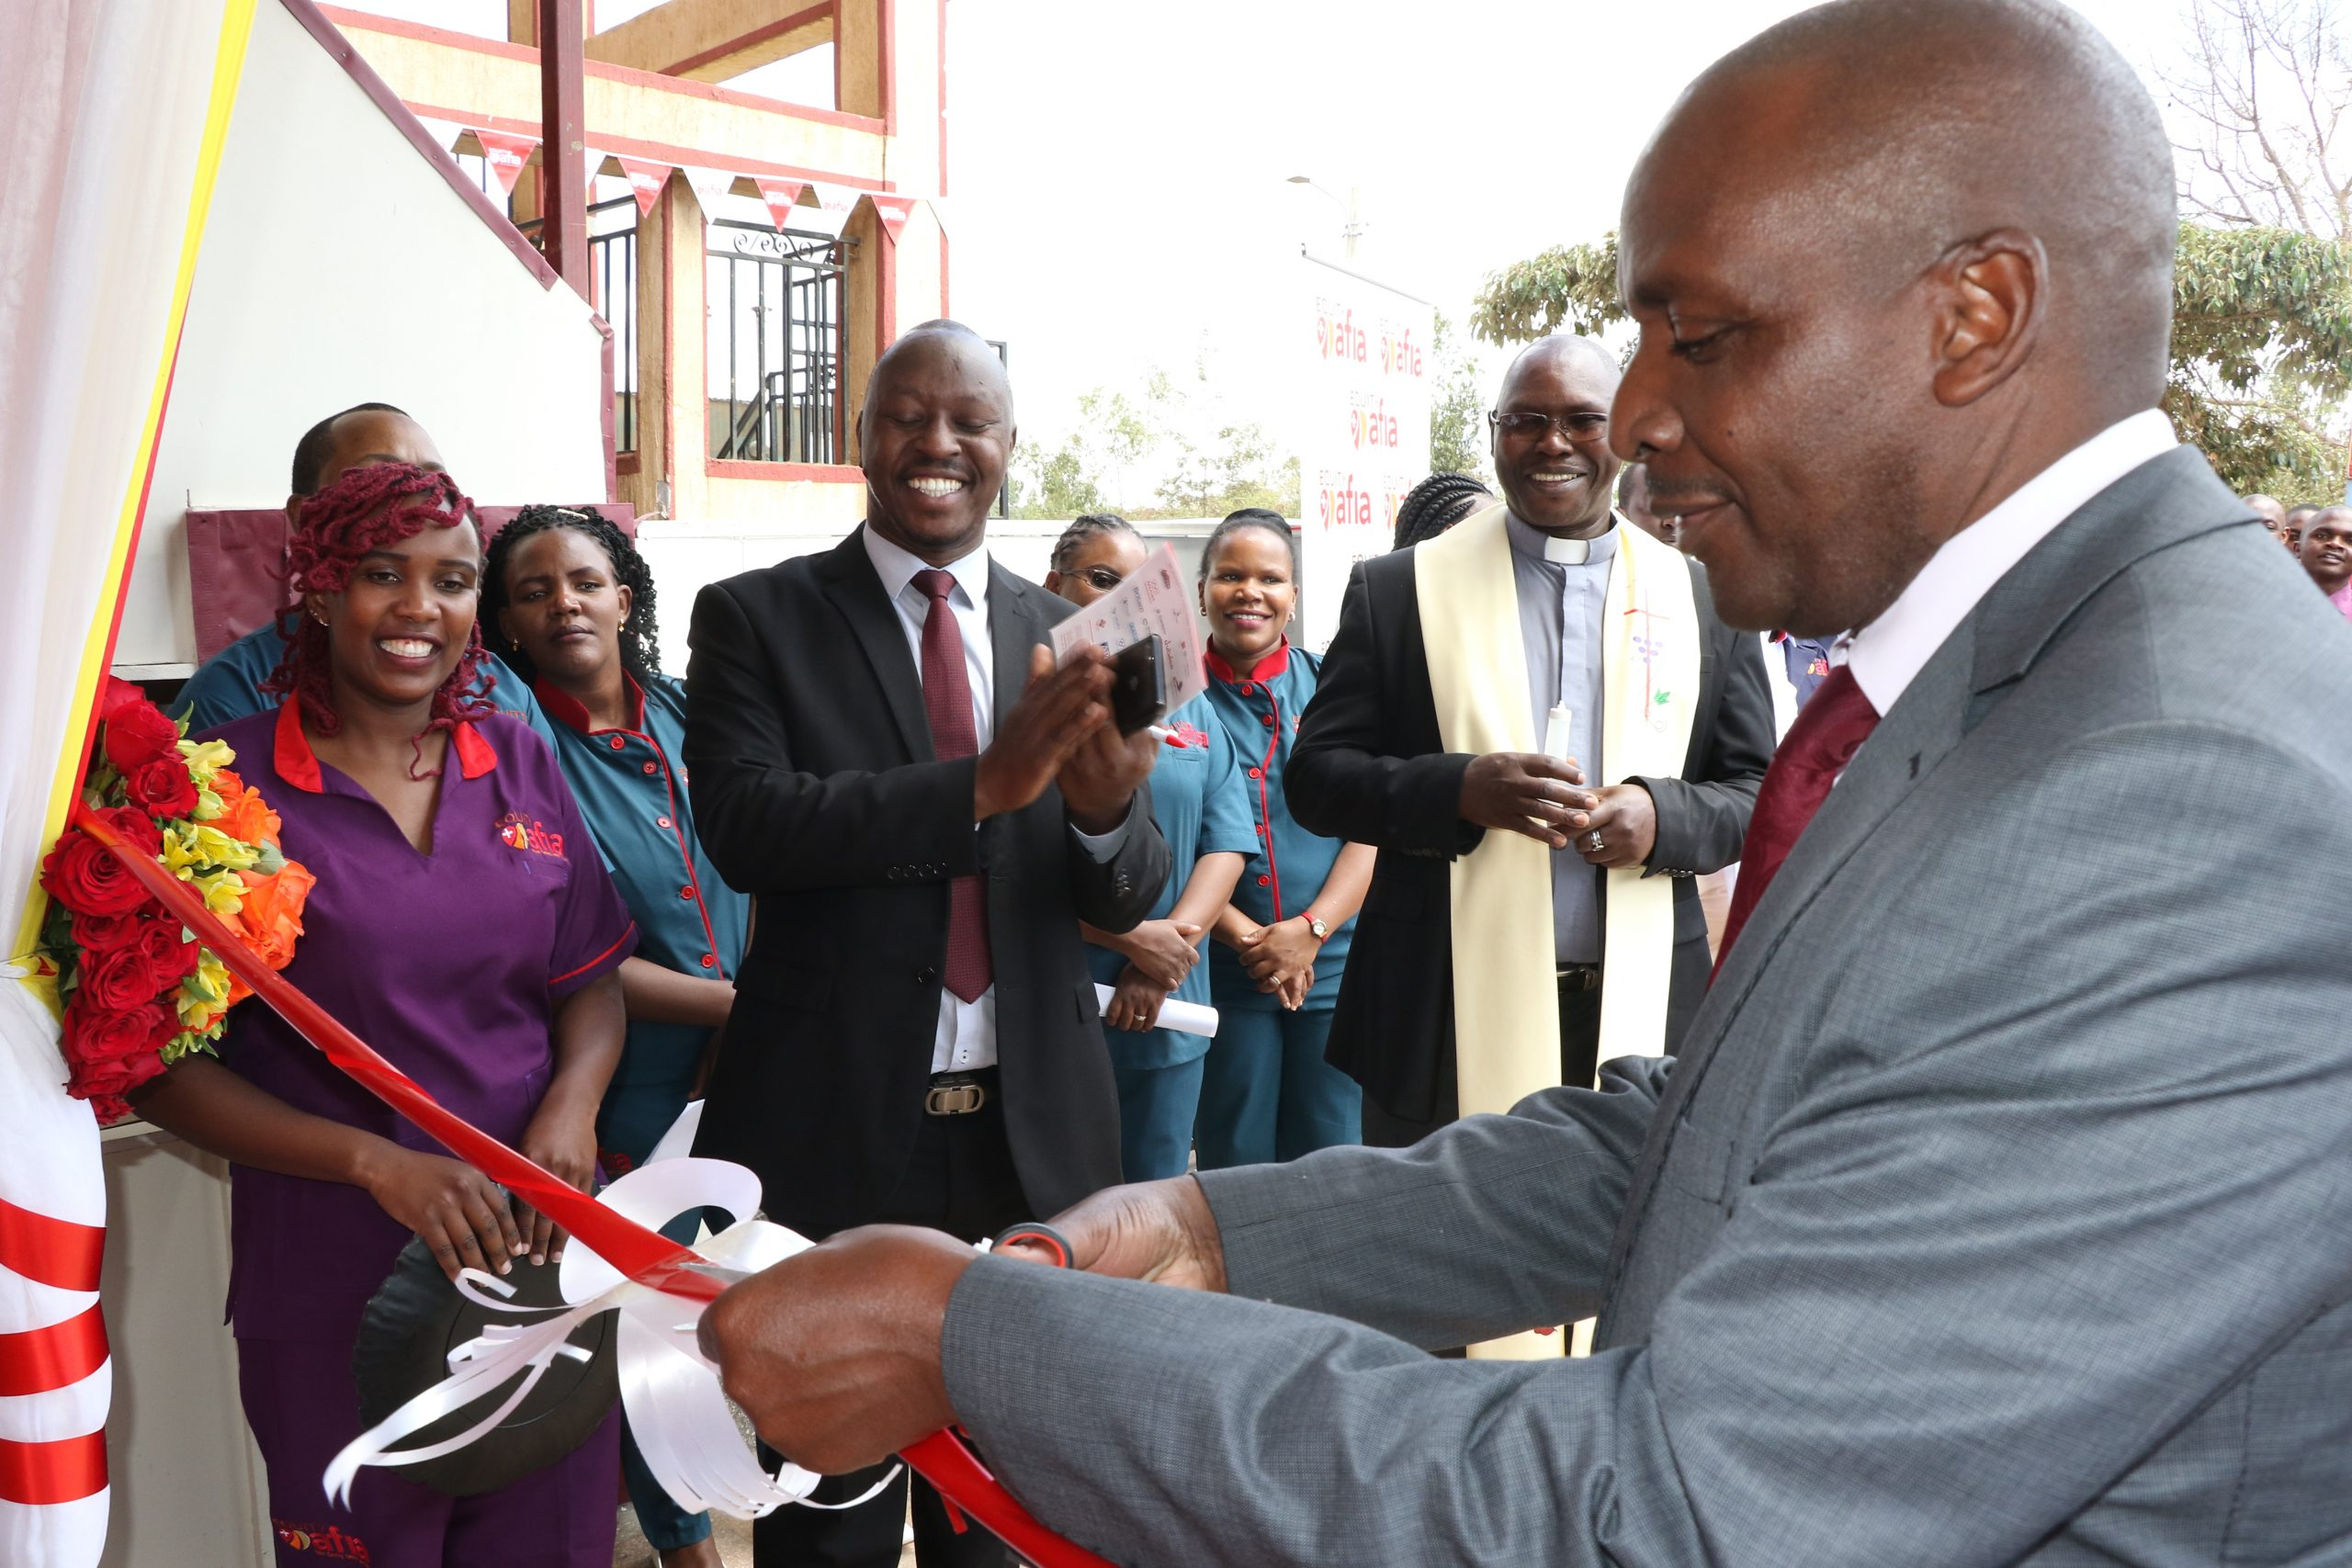 Equity Group Foundation Executive Director, Reuben Mbindu, during the opening of the Equity Afia clinic in Kahawa West. www.businesstoday.co.ke